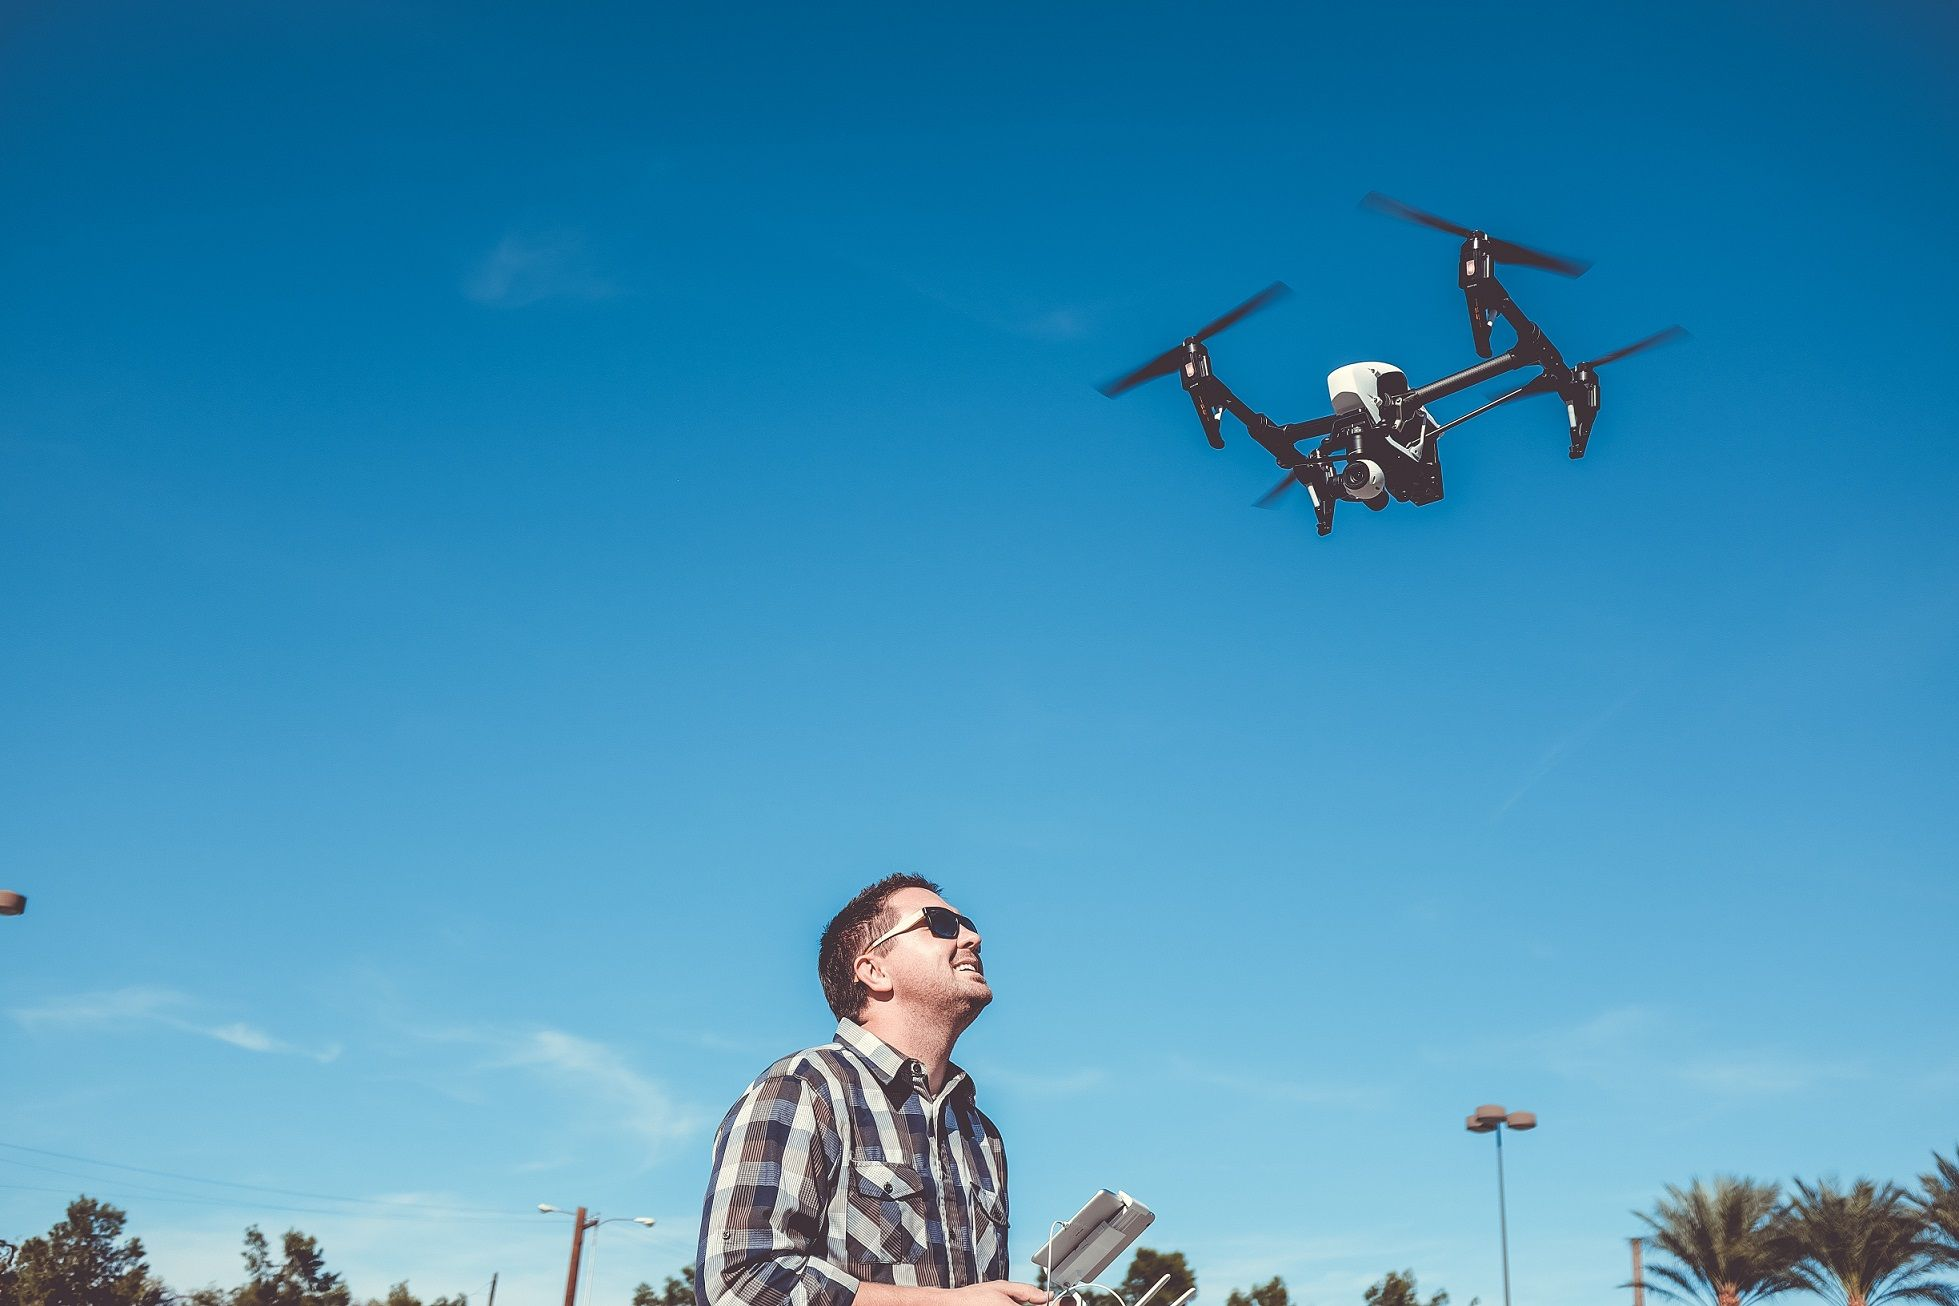 How To Get A Drone License A Step By Step Guide To The Faa Part 107 Certification Process Drone Business Drone Photography Uav